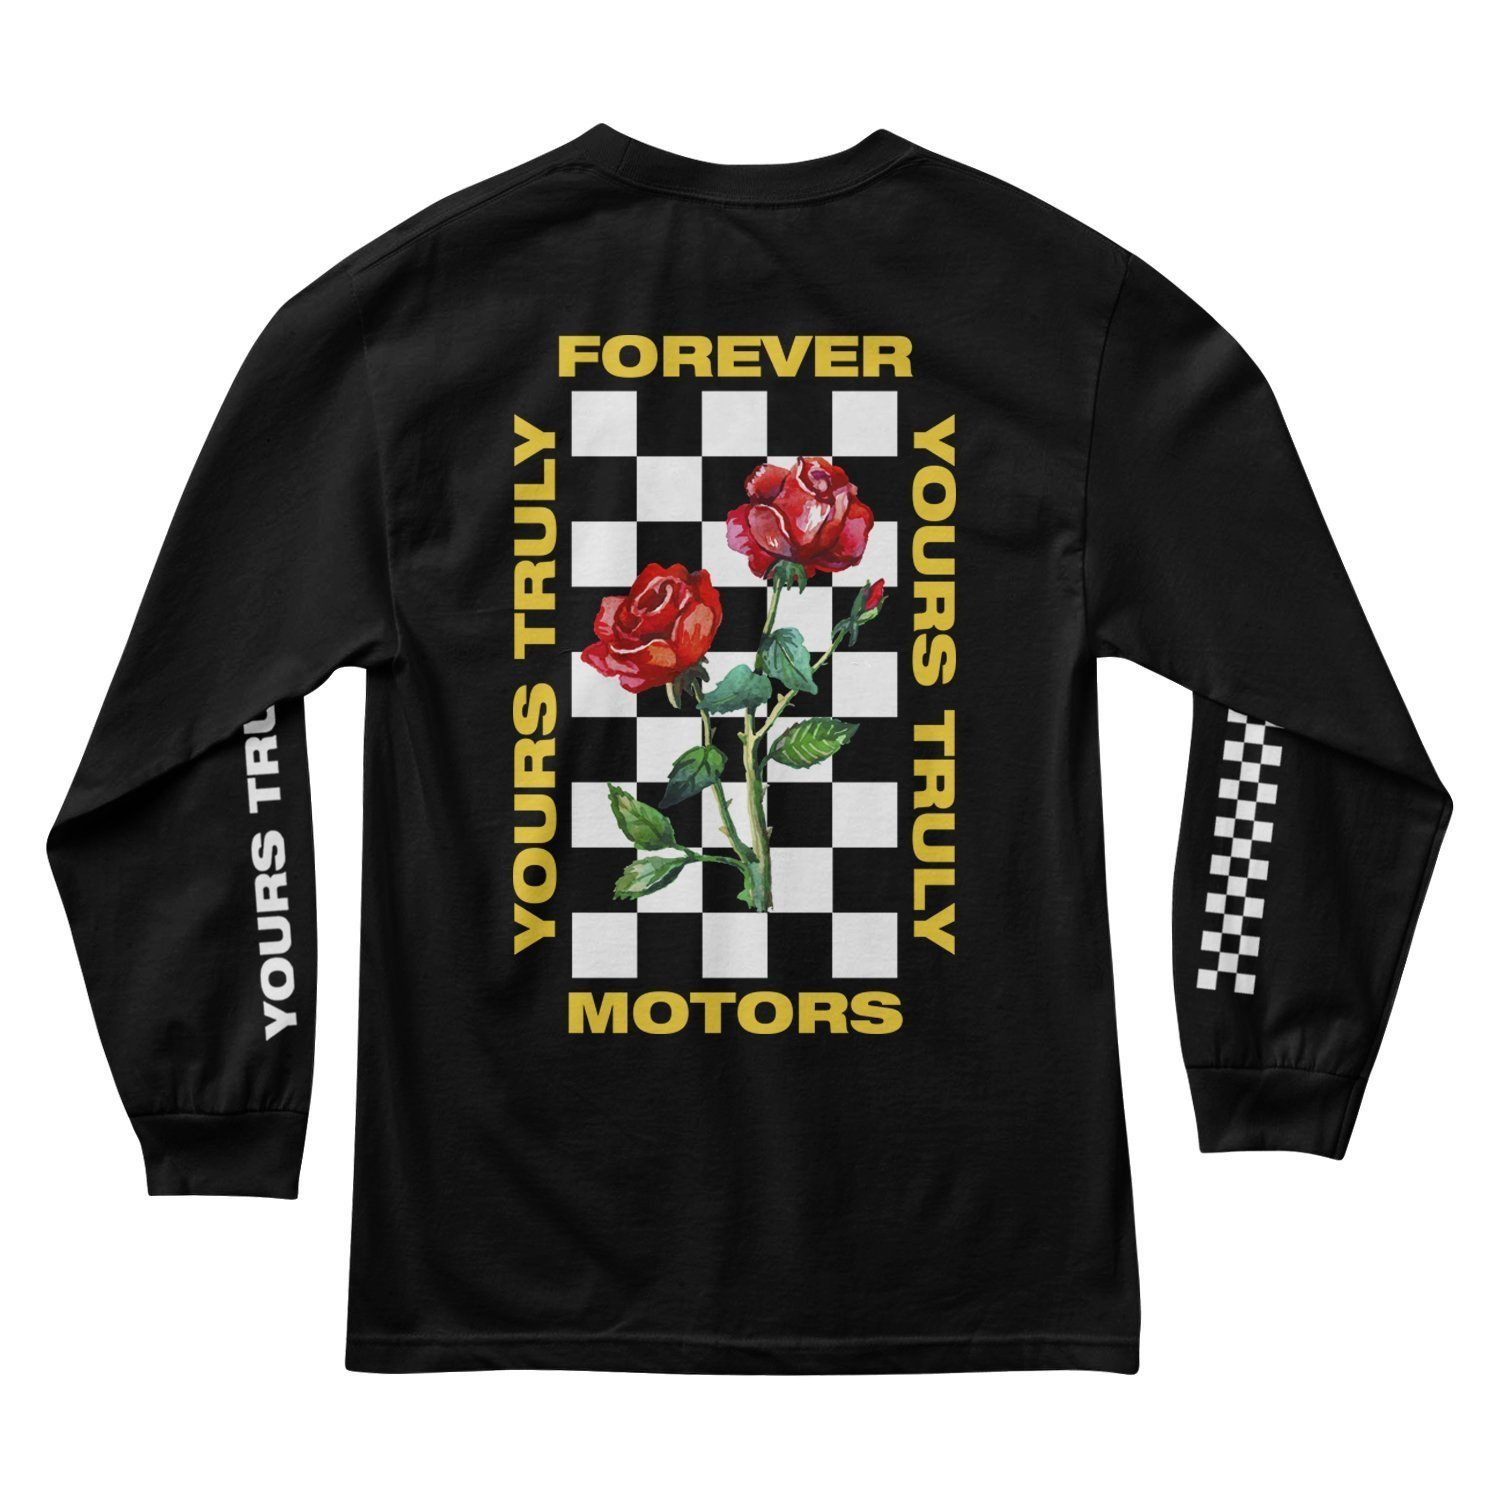 Yours Truly Forever Motors Long Sleeve - Black